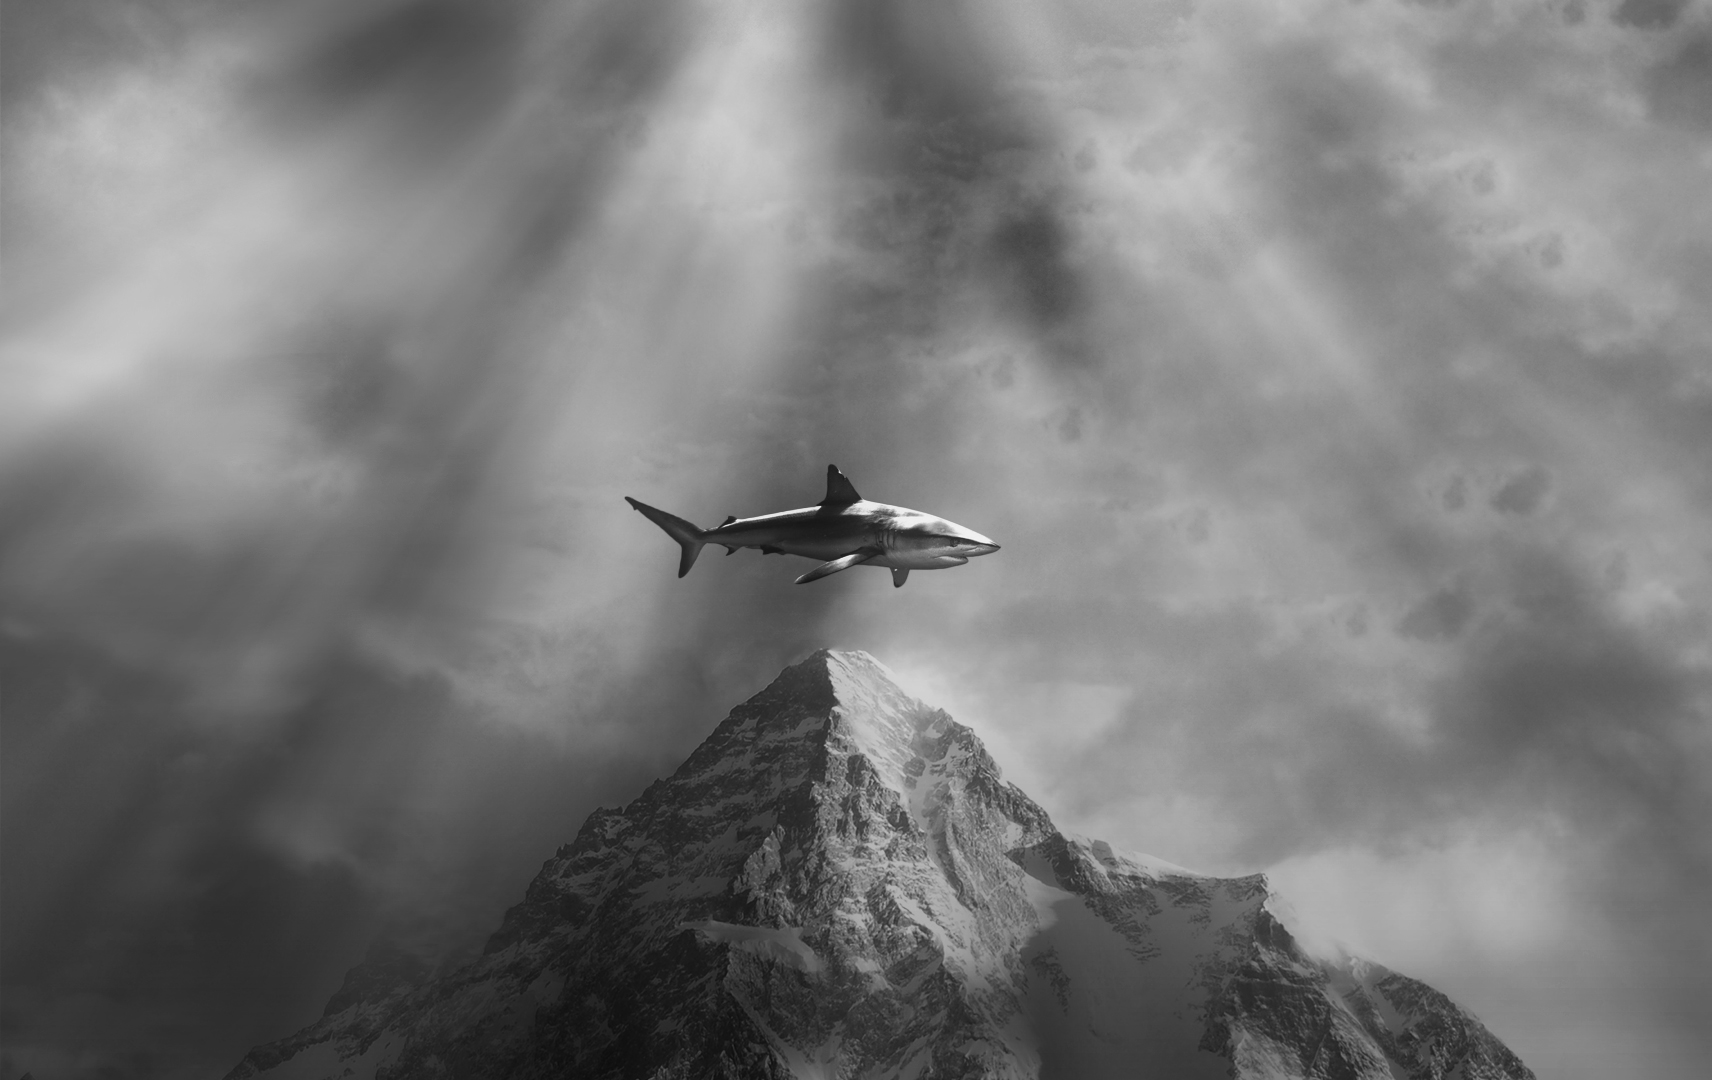 A shark perched on top of a mountain in a surreal photo-composition